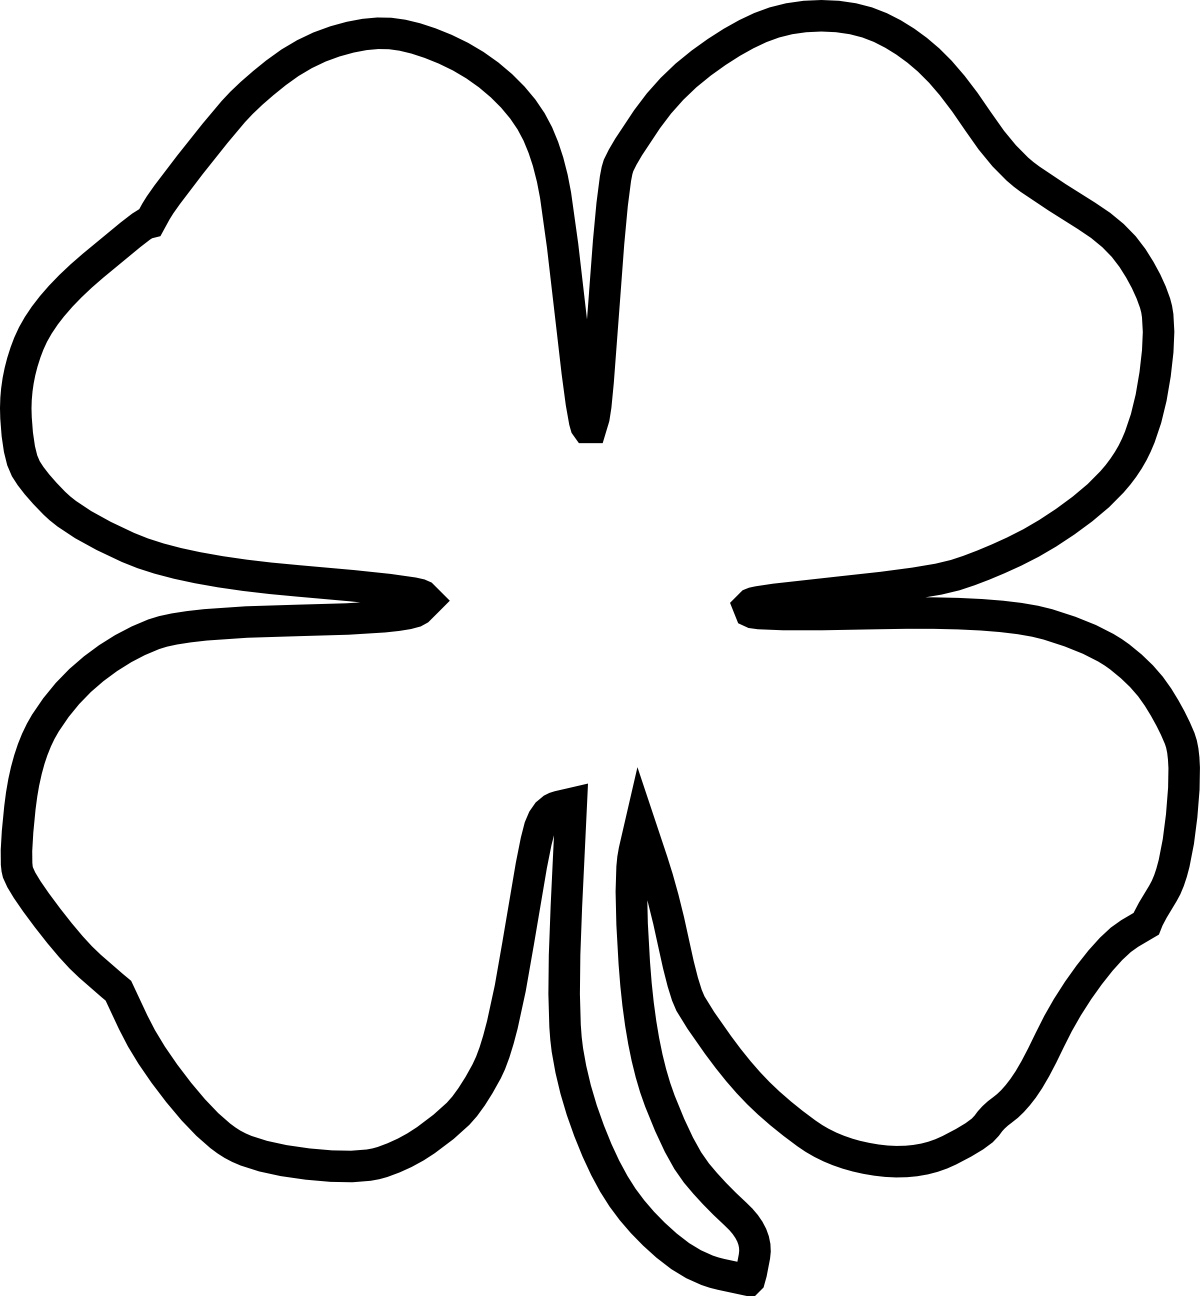 picture of a four leaf clover to color free four leaf clover picture download free clip art four picture color a of clover leaf to